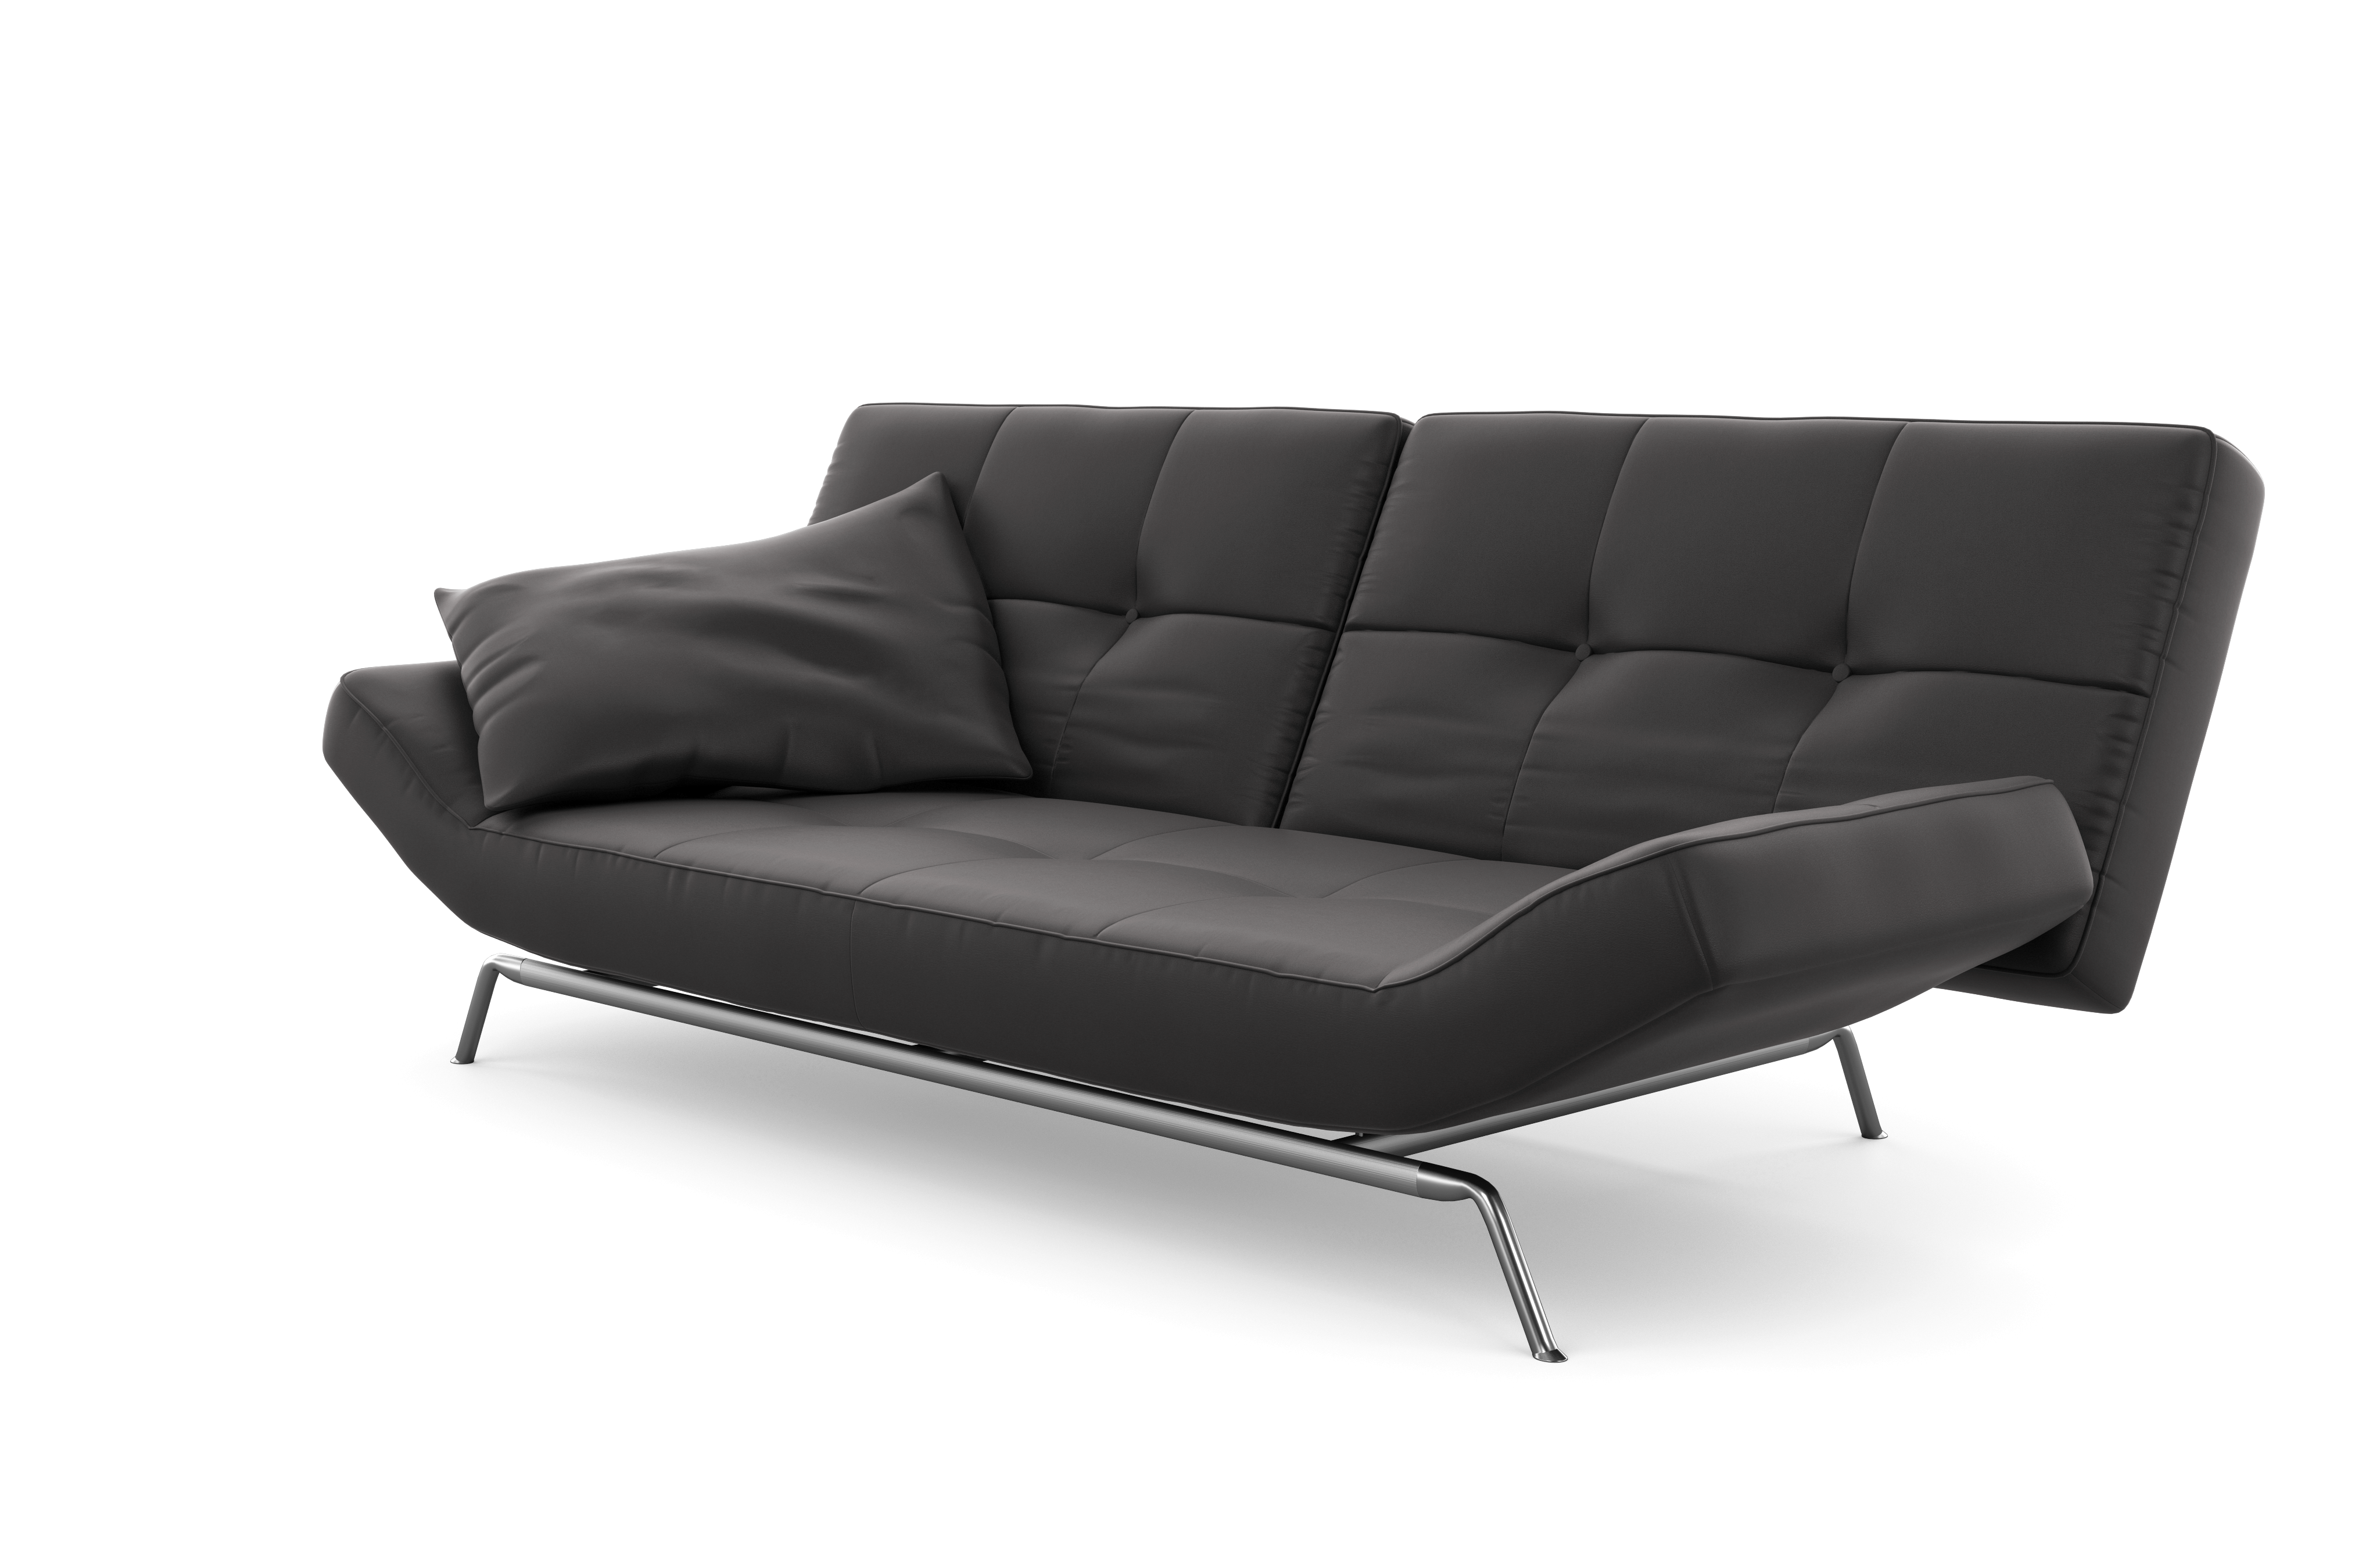 smala sofas designer pascal mourgue ligne roset. Black Bedroom Furniture Sets. Home Design Ideas